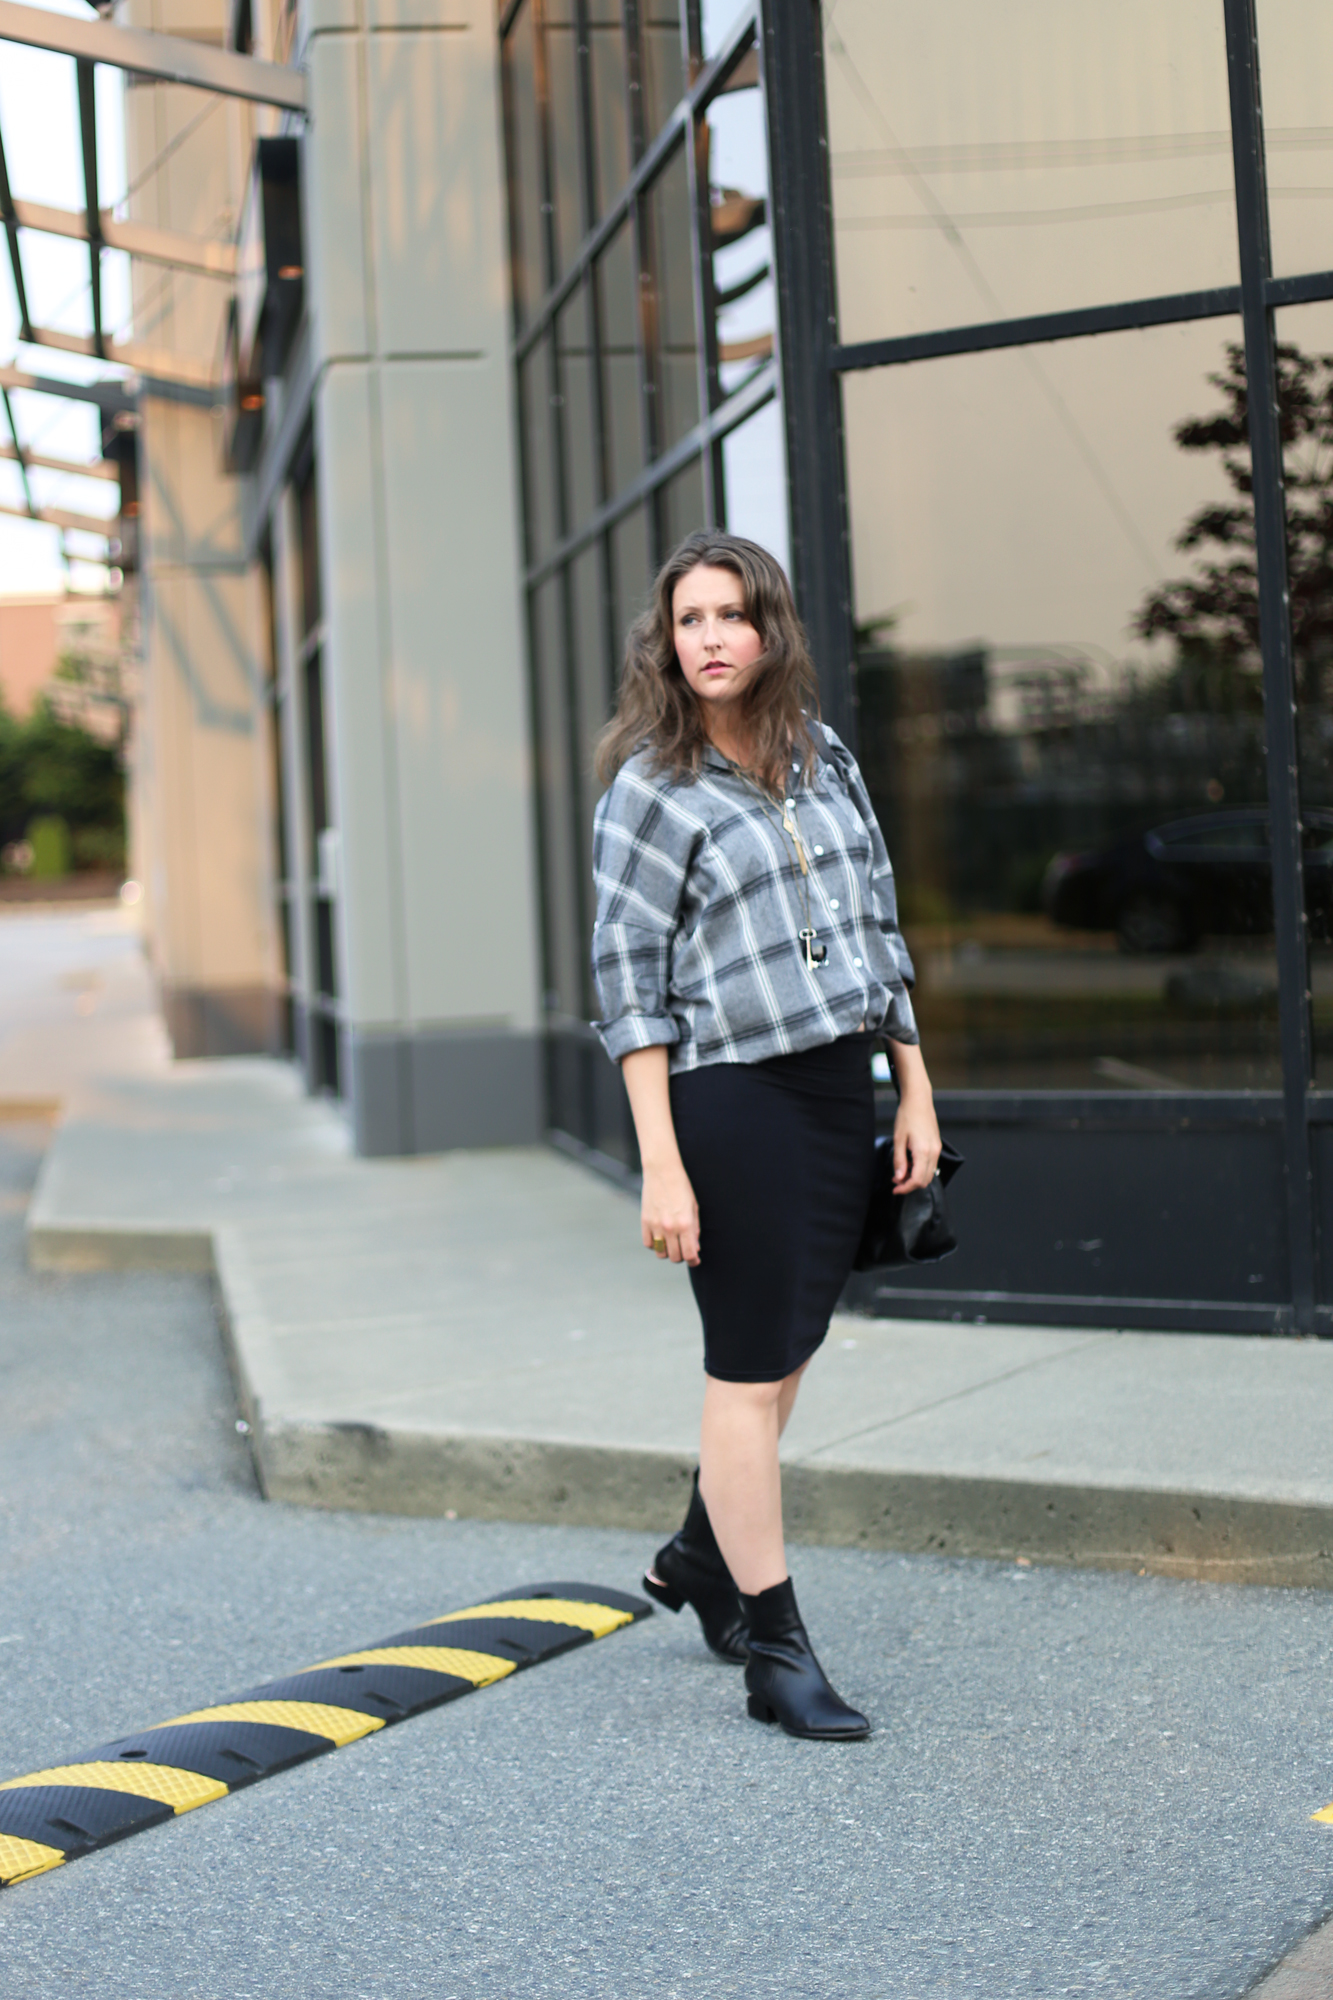 Love this classic minimalist outfit: alexander wang anouck boots, black tube skirt, and an oversized boyfriend shirt.